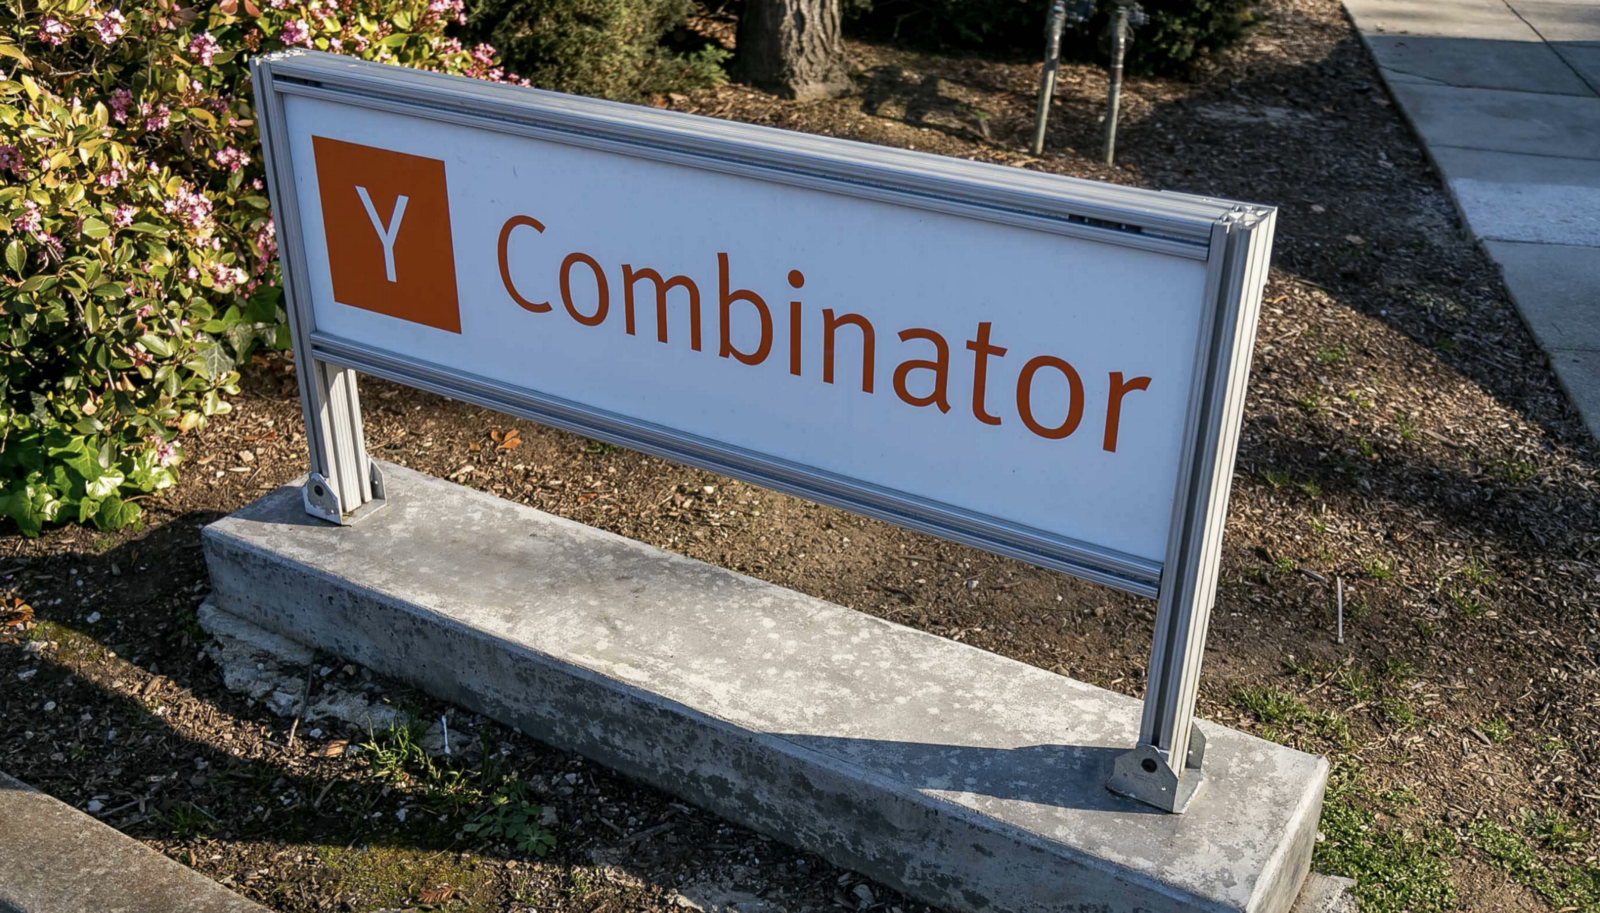 /the-ultimate-guide-to-ycombinator-interview-preparation-8372628154c3 feature image